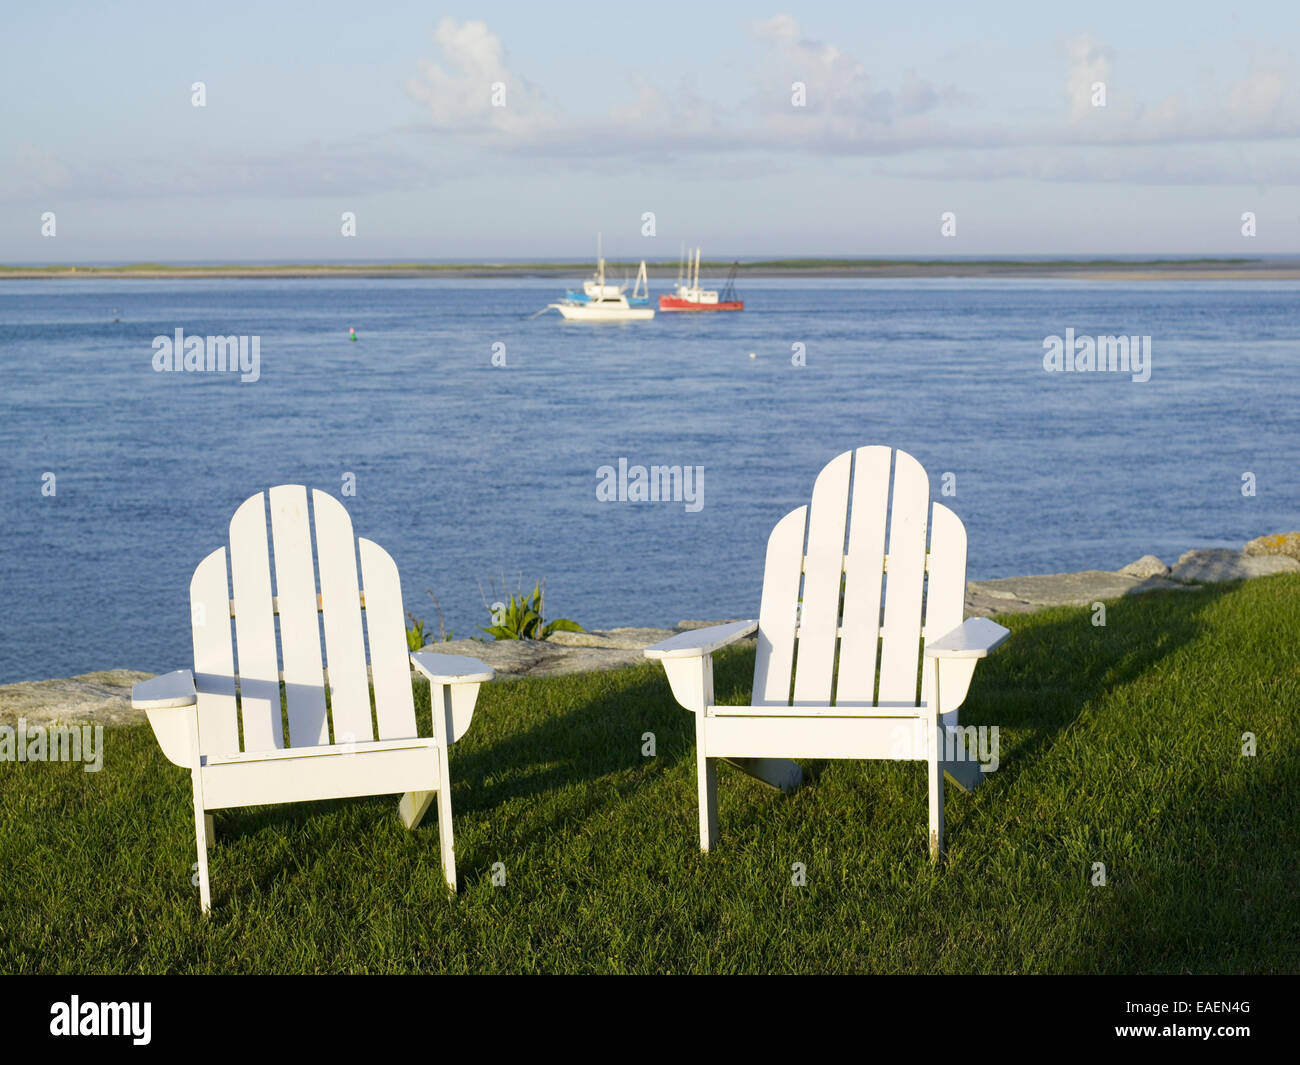 two white Adirondack chairs on lawn by the bay - Stock Image